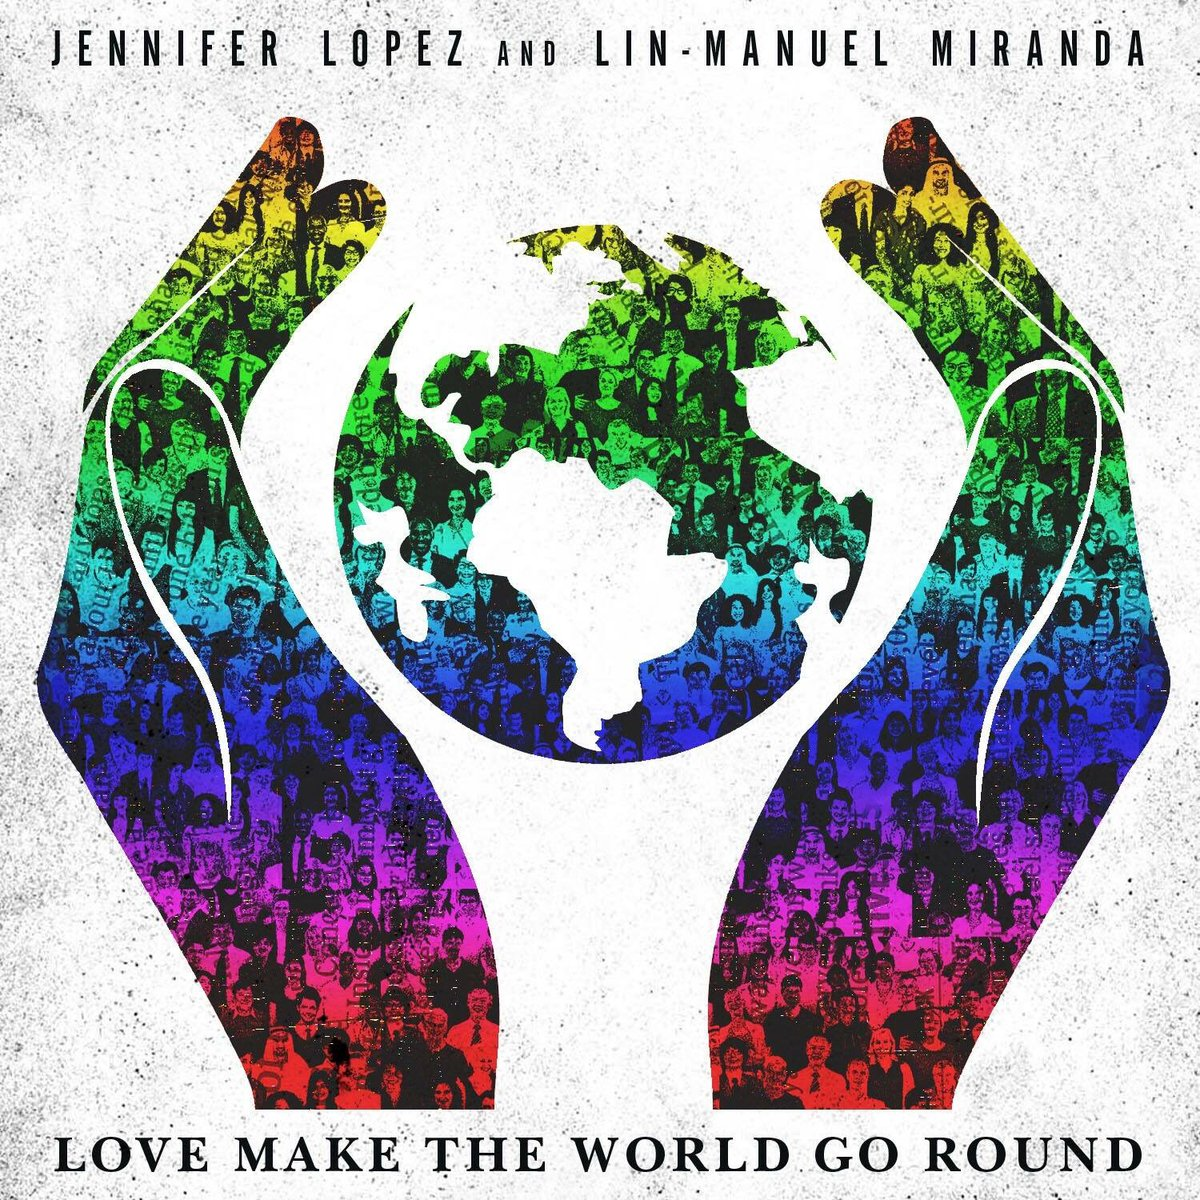 #LoveMakeTheWorldGoRound Available TONIGHT (9pm PDT/ 12am EDT) on @itunes  #SomosOrlando @JLo @Lin_Manuel ❤️